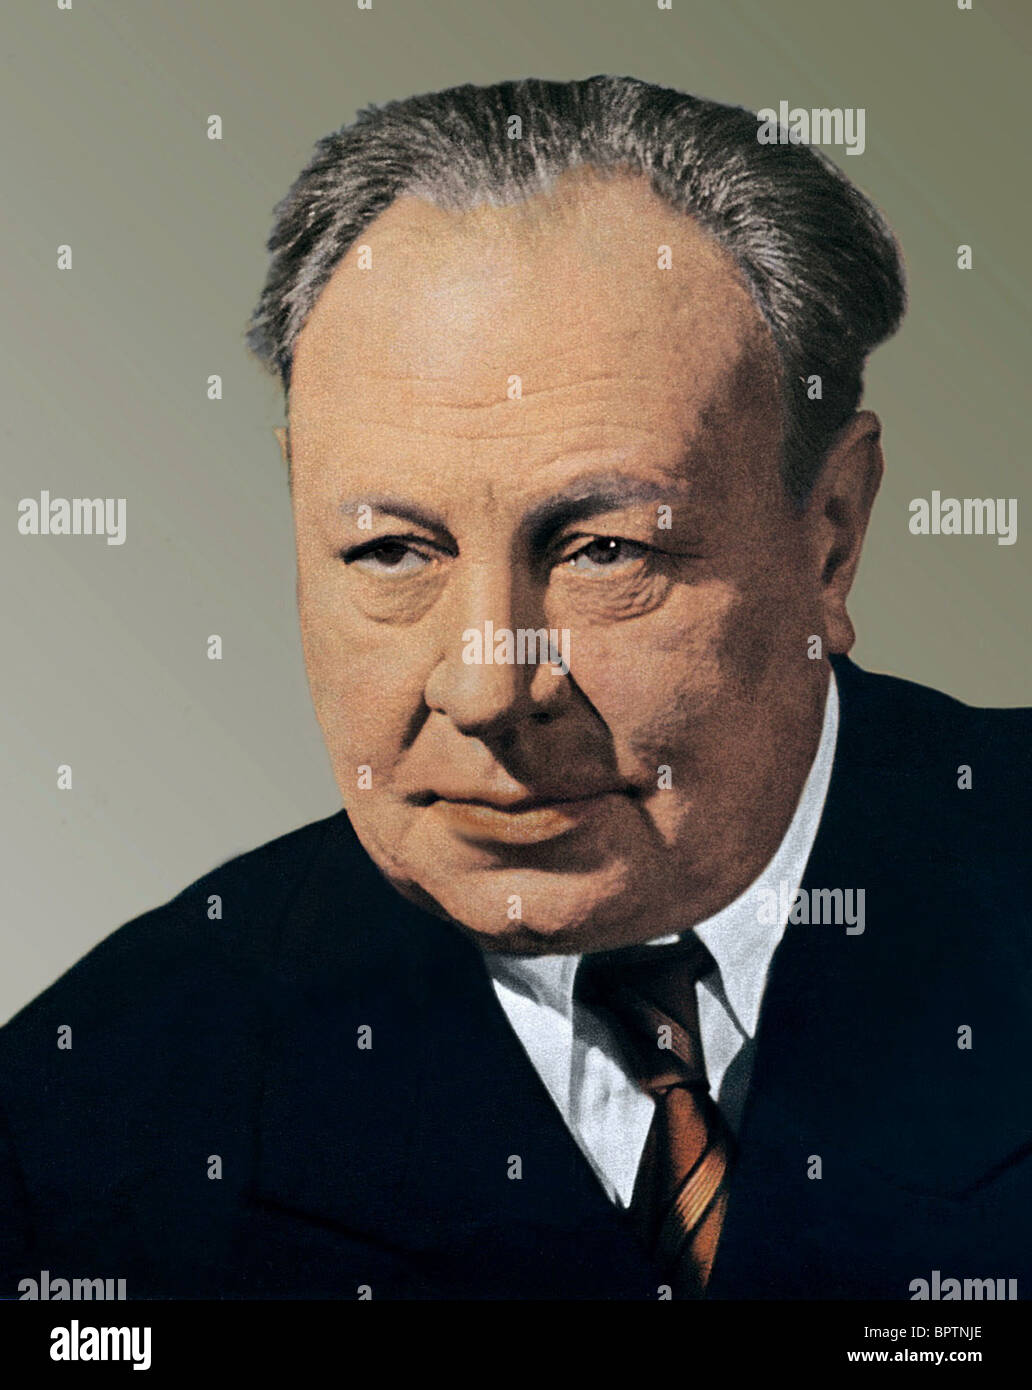 EMIL JANNINGS ACTOR (1942) - Stock Image